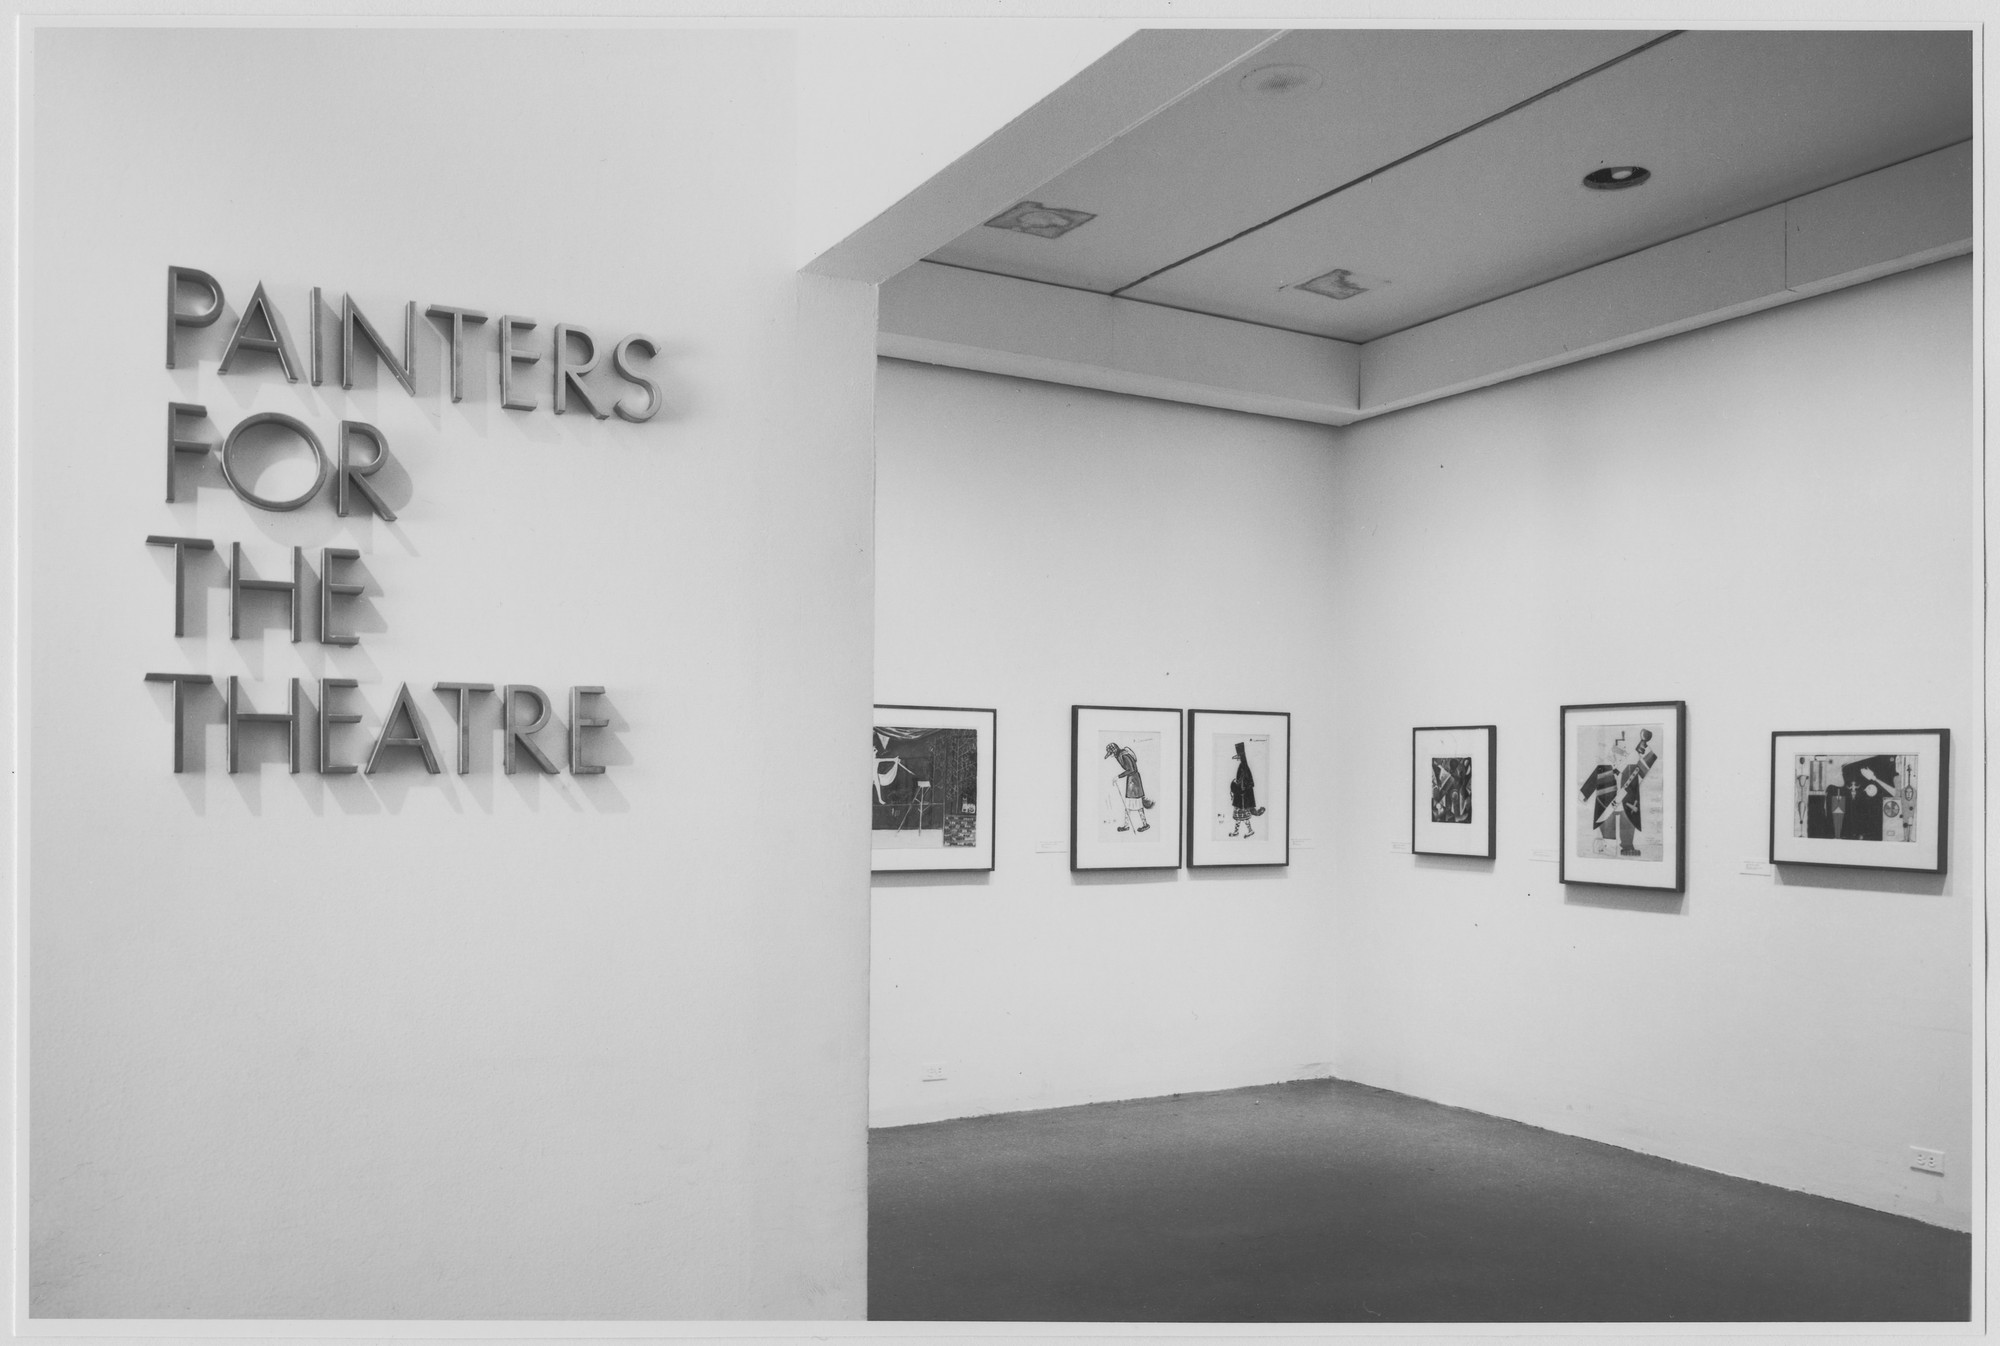 "Installation view of the exhibition, ""Painters for the Theatre: An Invitation to the Theatre Art Collection."" November 19, 1973–January 13, 1974. Photographic Archive. The Museum of Modern Art Archives, New York. IN1048.1. Photograph by Katherine Keller."